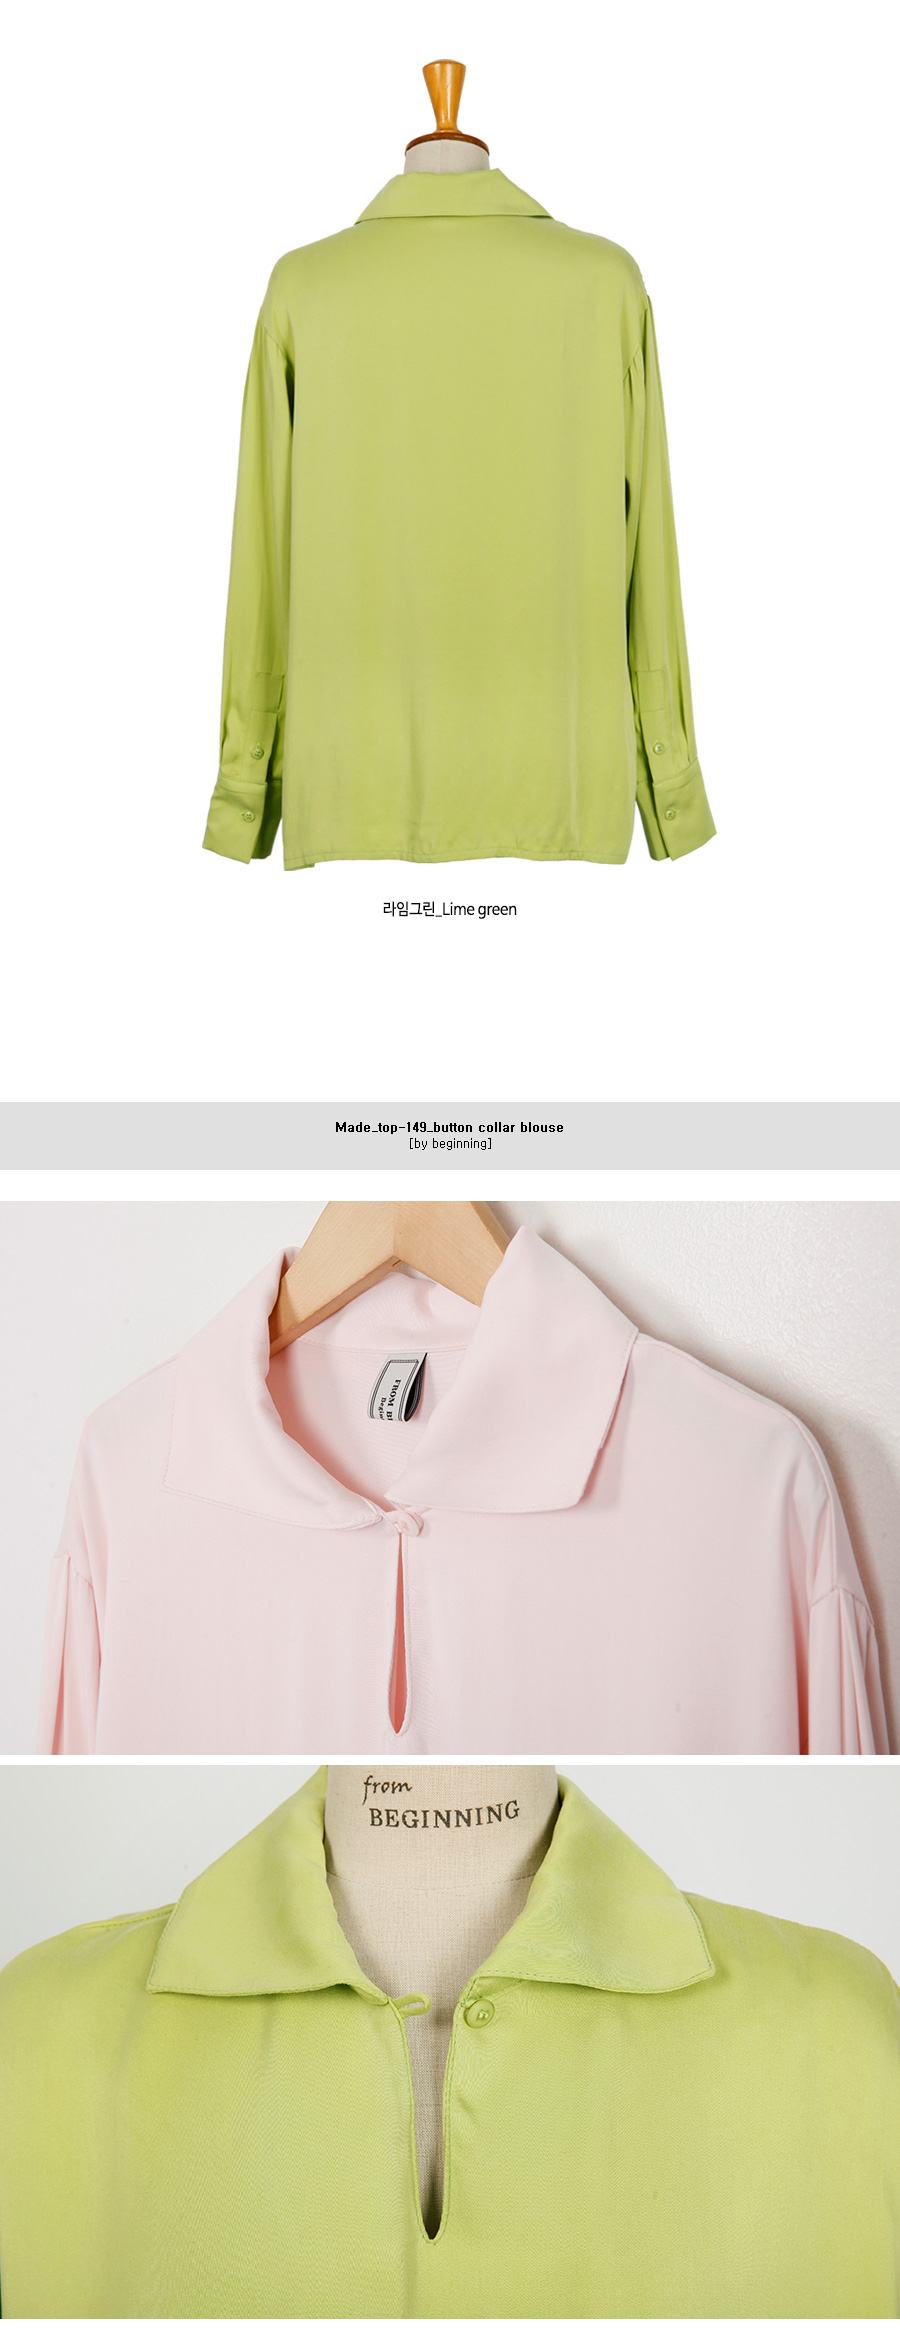 Made_top-149_button collar blouse (size : free)